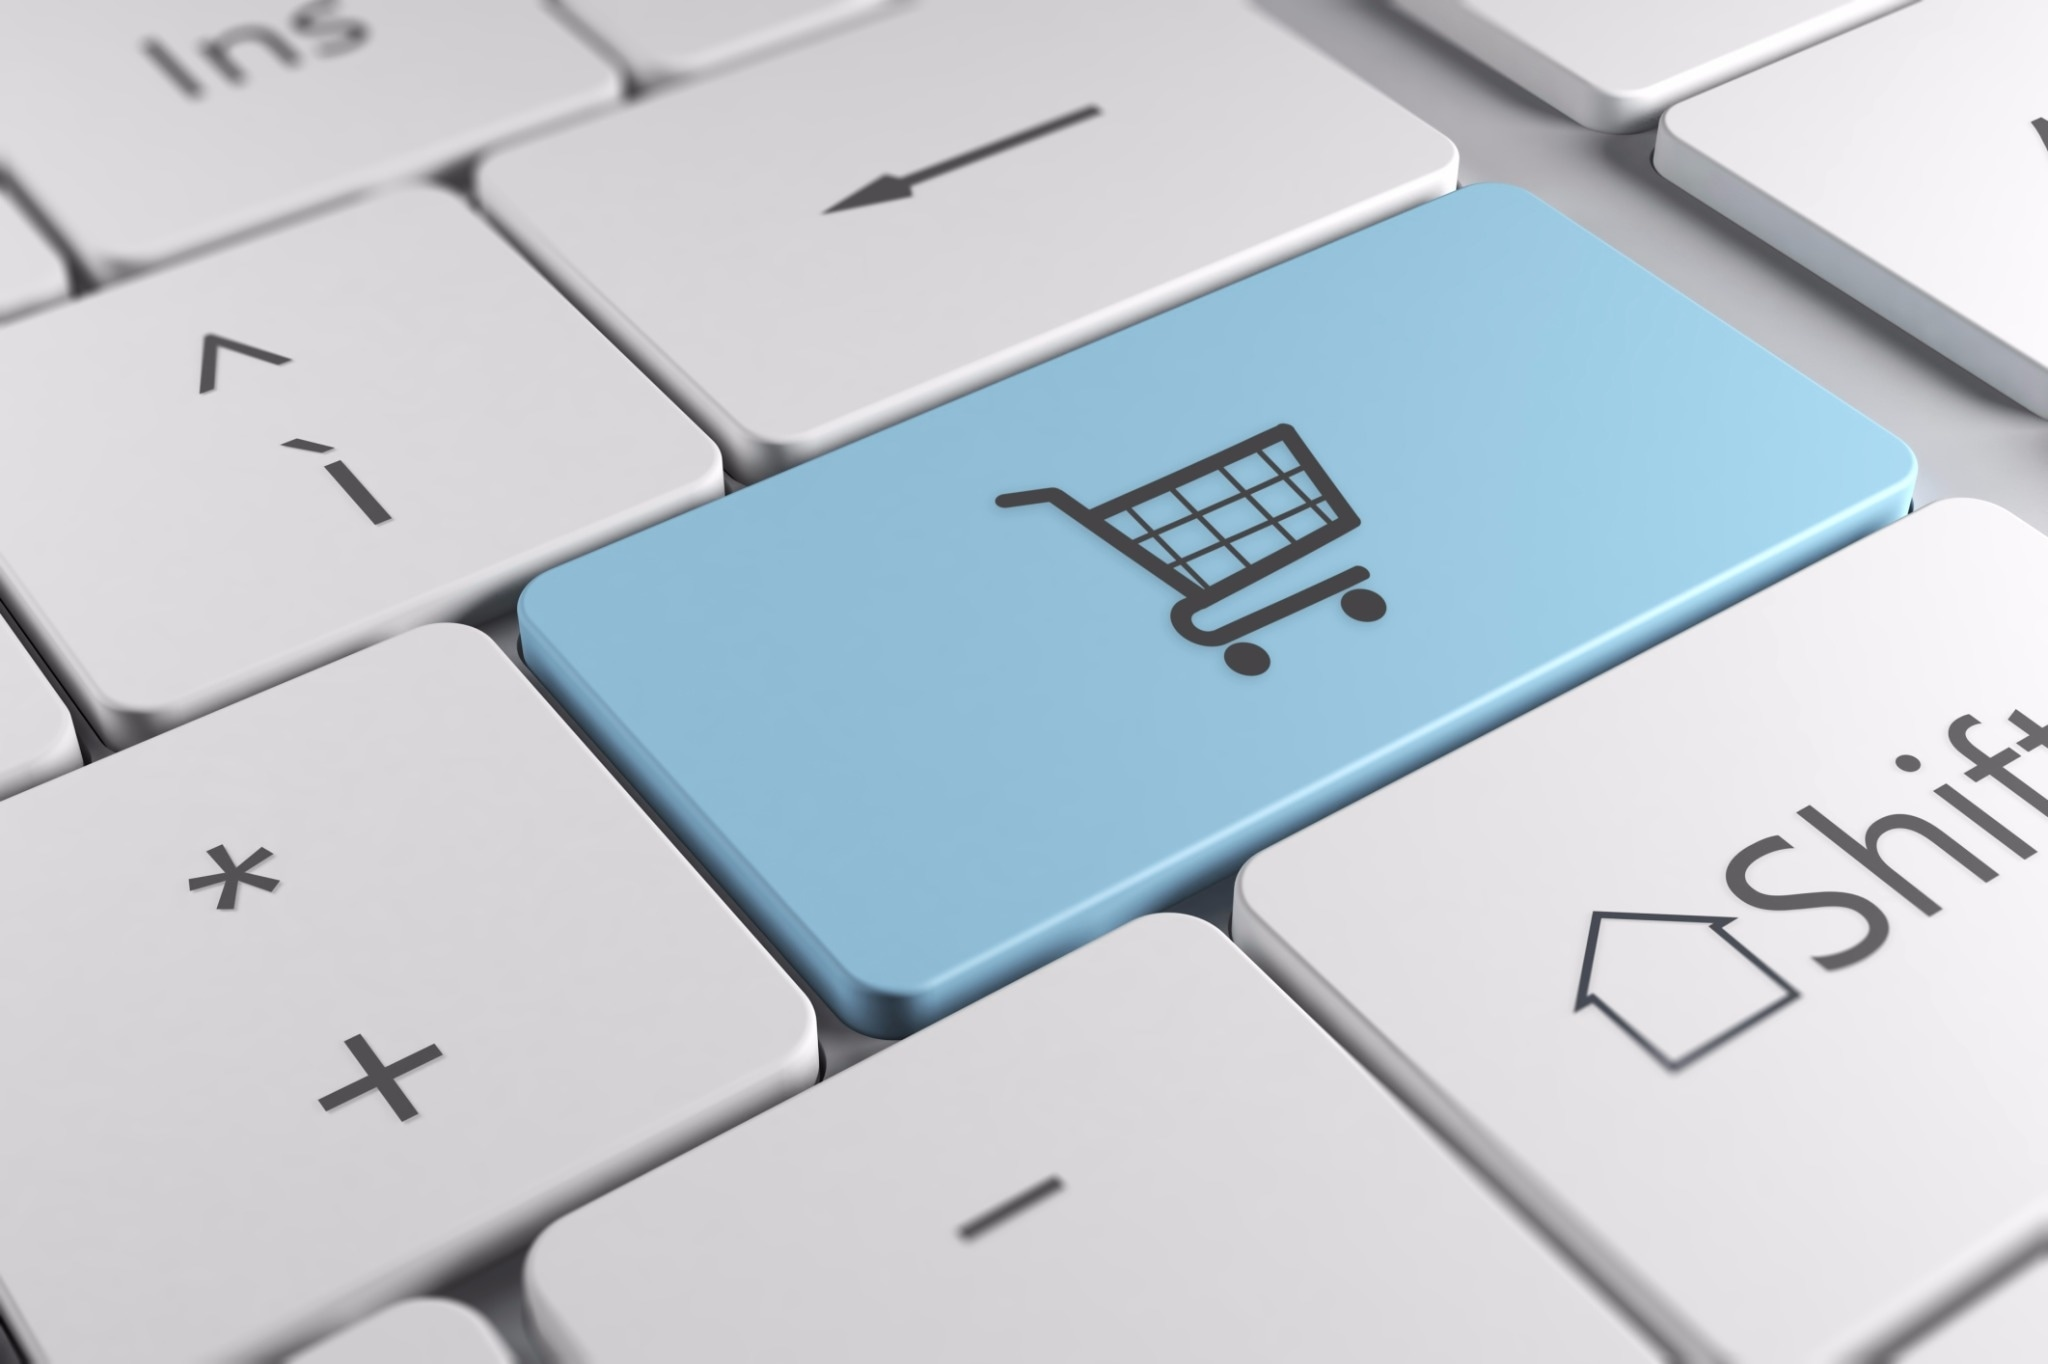 14 Online Shopping Hacks Proven to Save You Money and Time